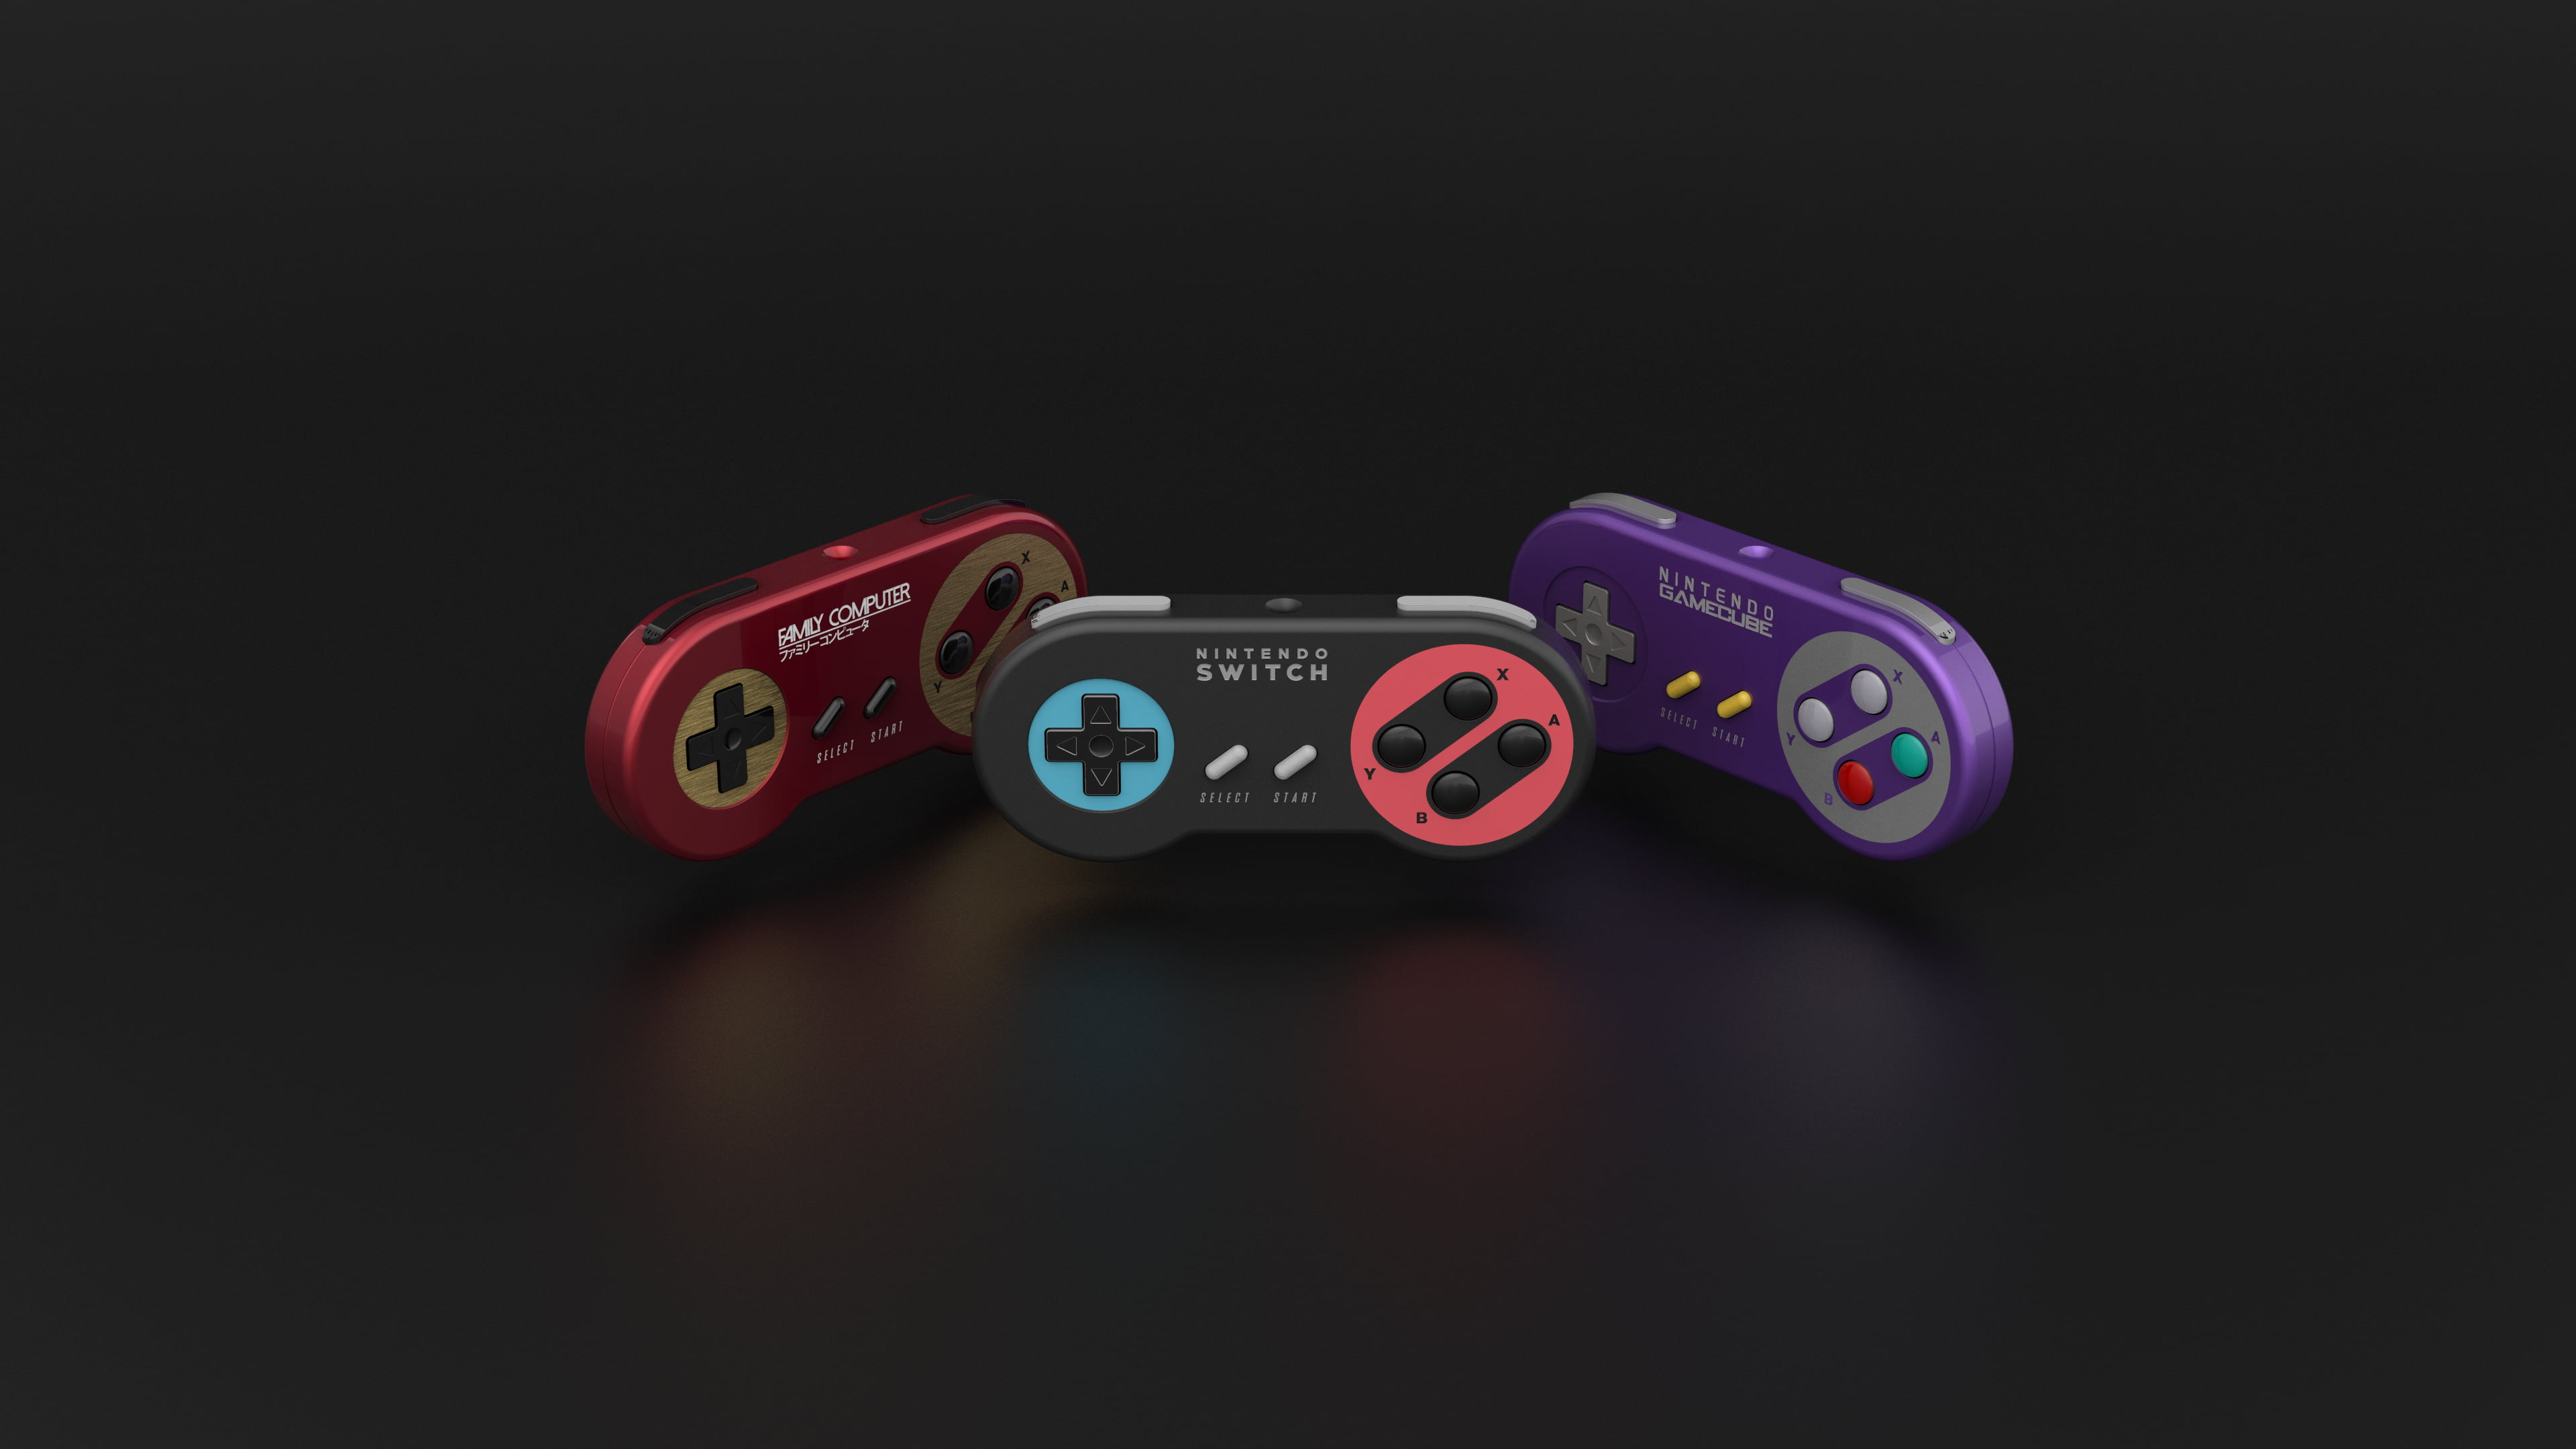 Three Assorted-colored Nintendo Switch Controller, - Nintendo Switch Wallpaper 4k , HD Wallpaper & Backgrounds